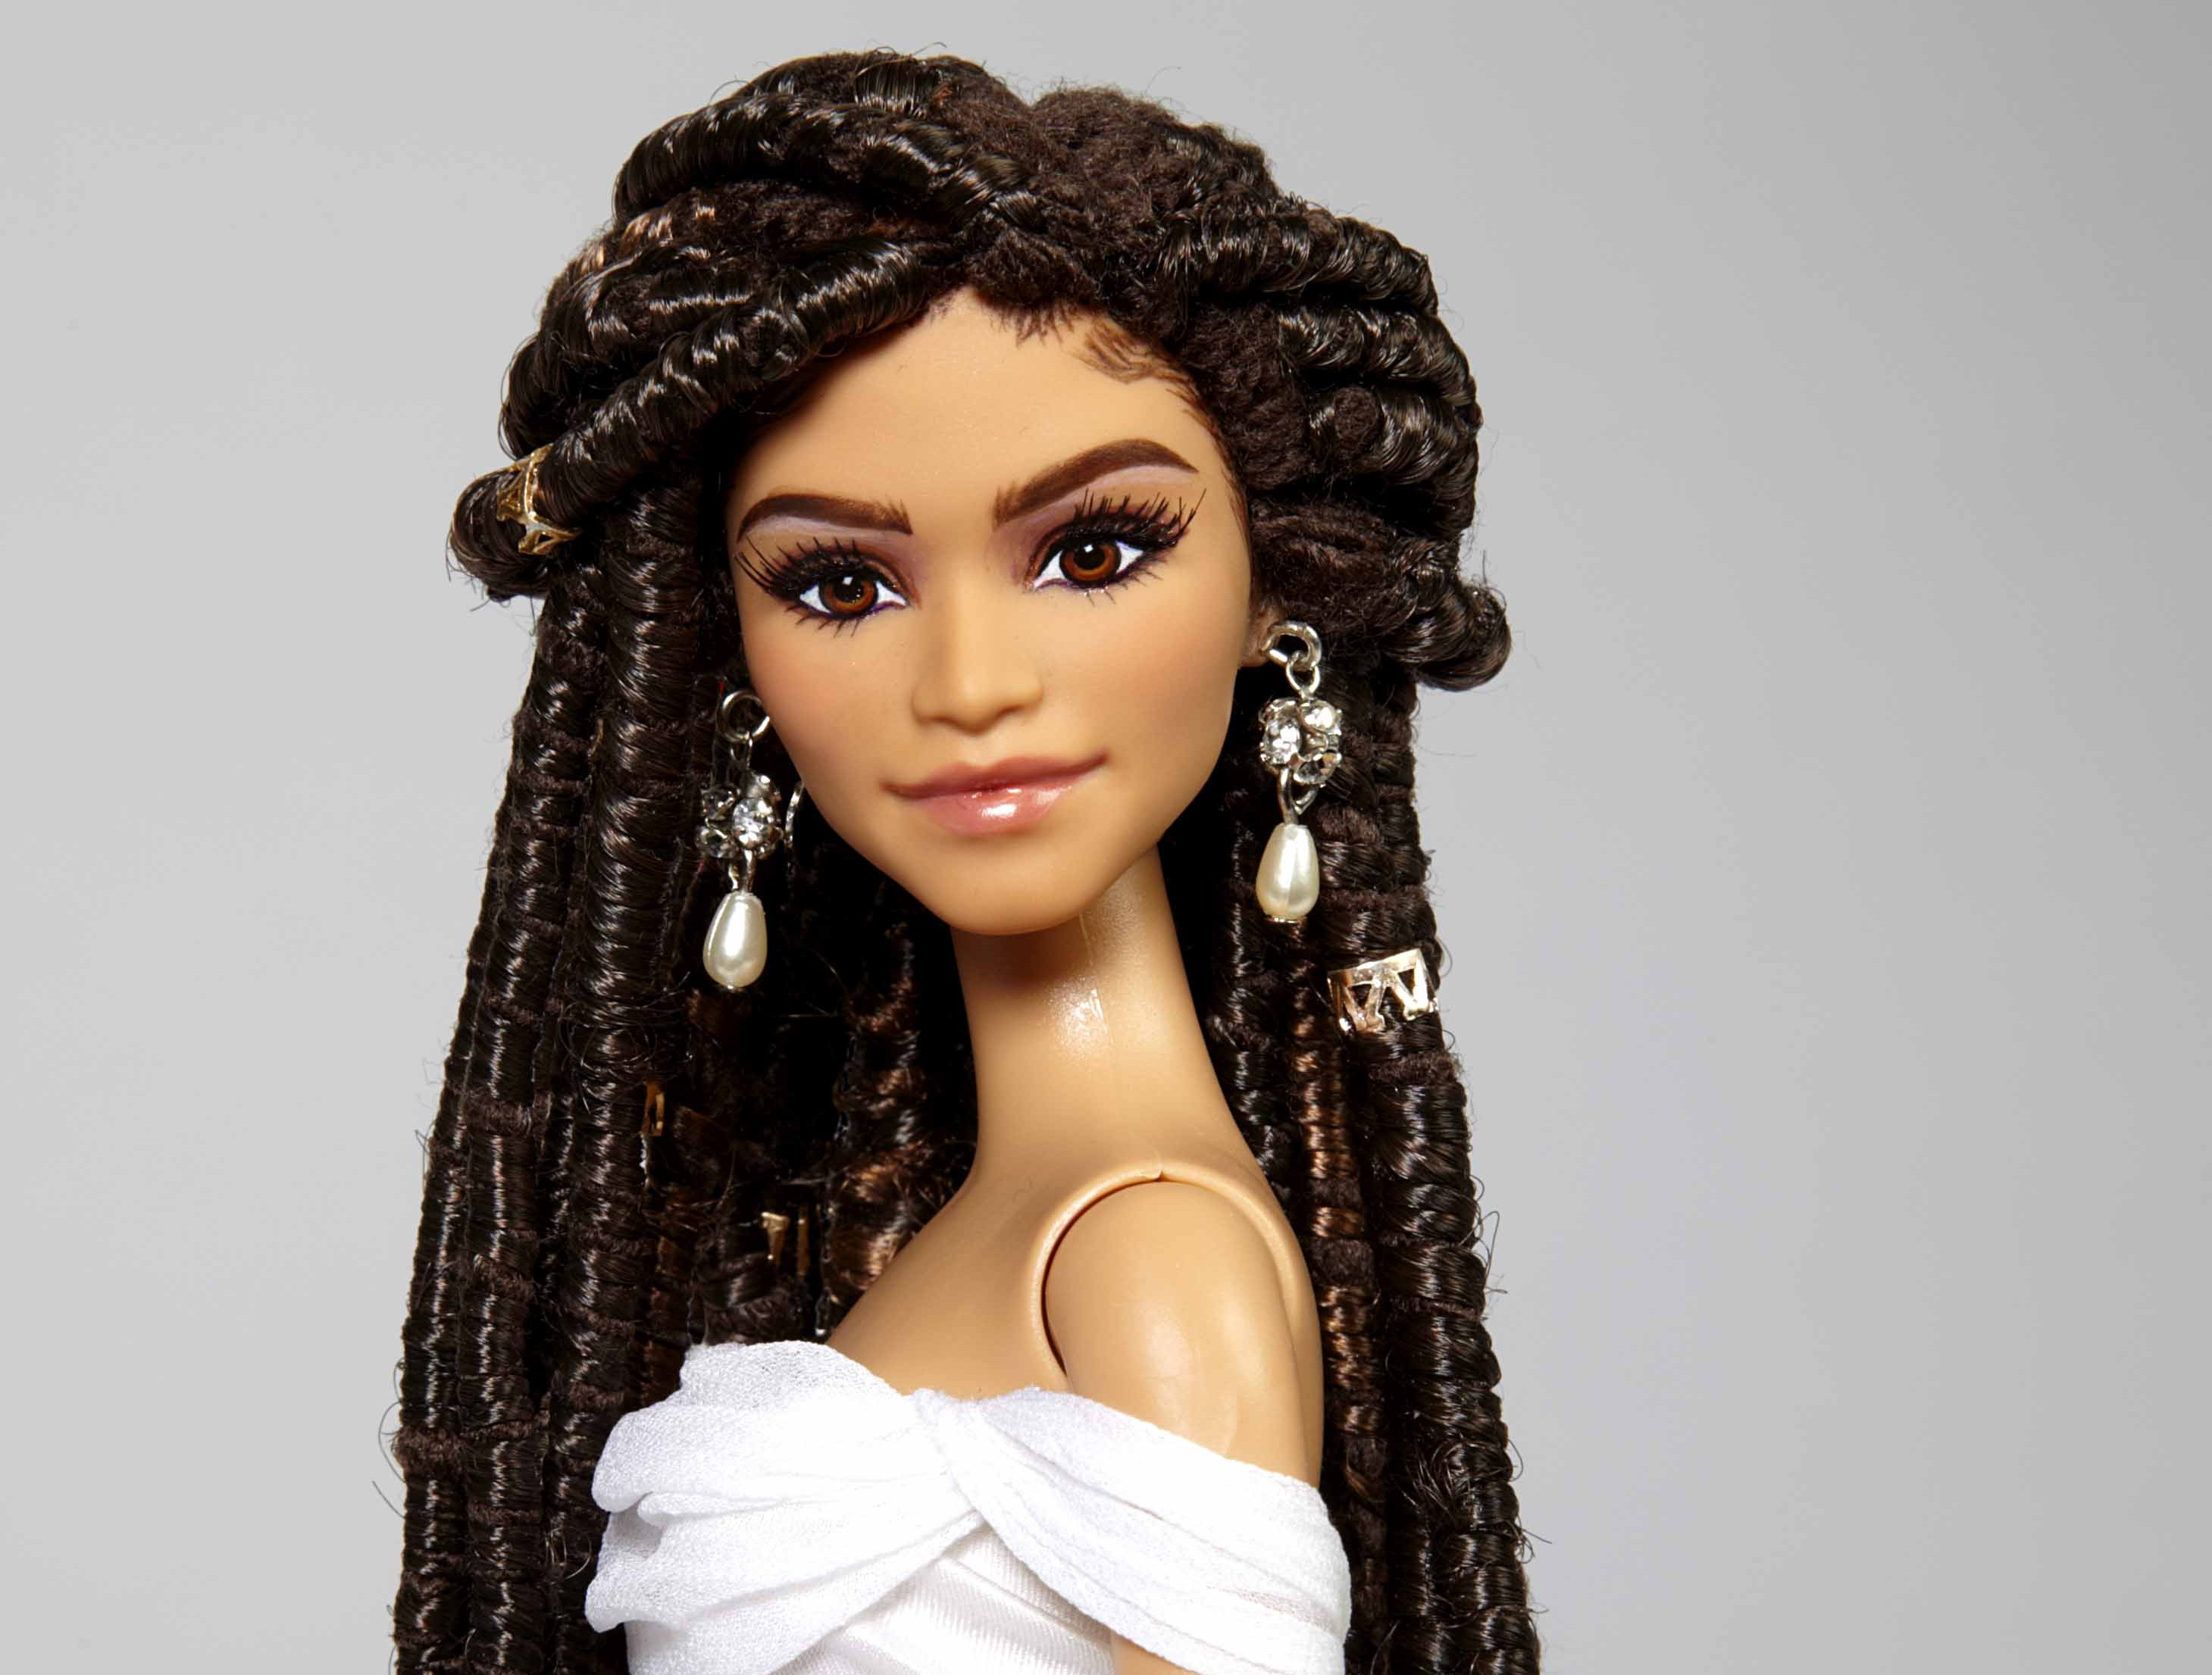 Dreadlocks hair dreadlocks pinterest - Zendaya S Now A Barbie 5 More Celebs I Want Barbie Fied